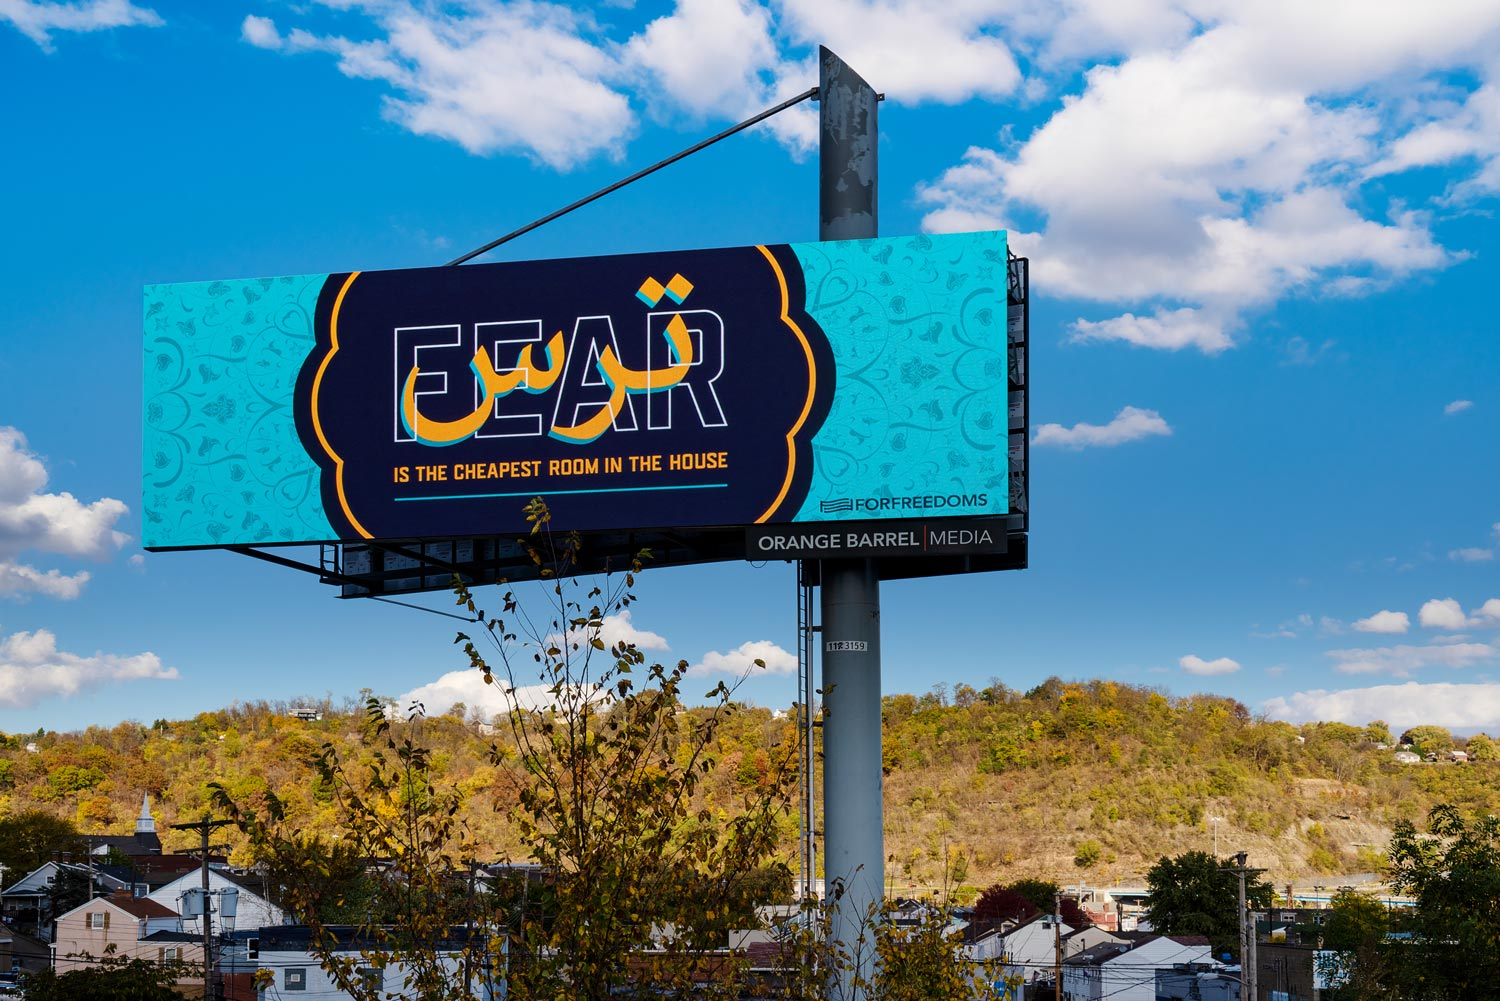 Photograph of billboard on the side of a highway in front of a grassy hill and a blue sky with white fluffy clouds. The billboard has a teal floral background. Text on a dark blue background in the center reads Fear is the Cheapest Room in the House.